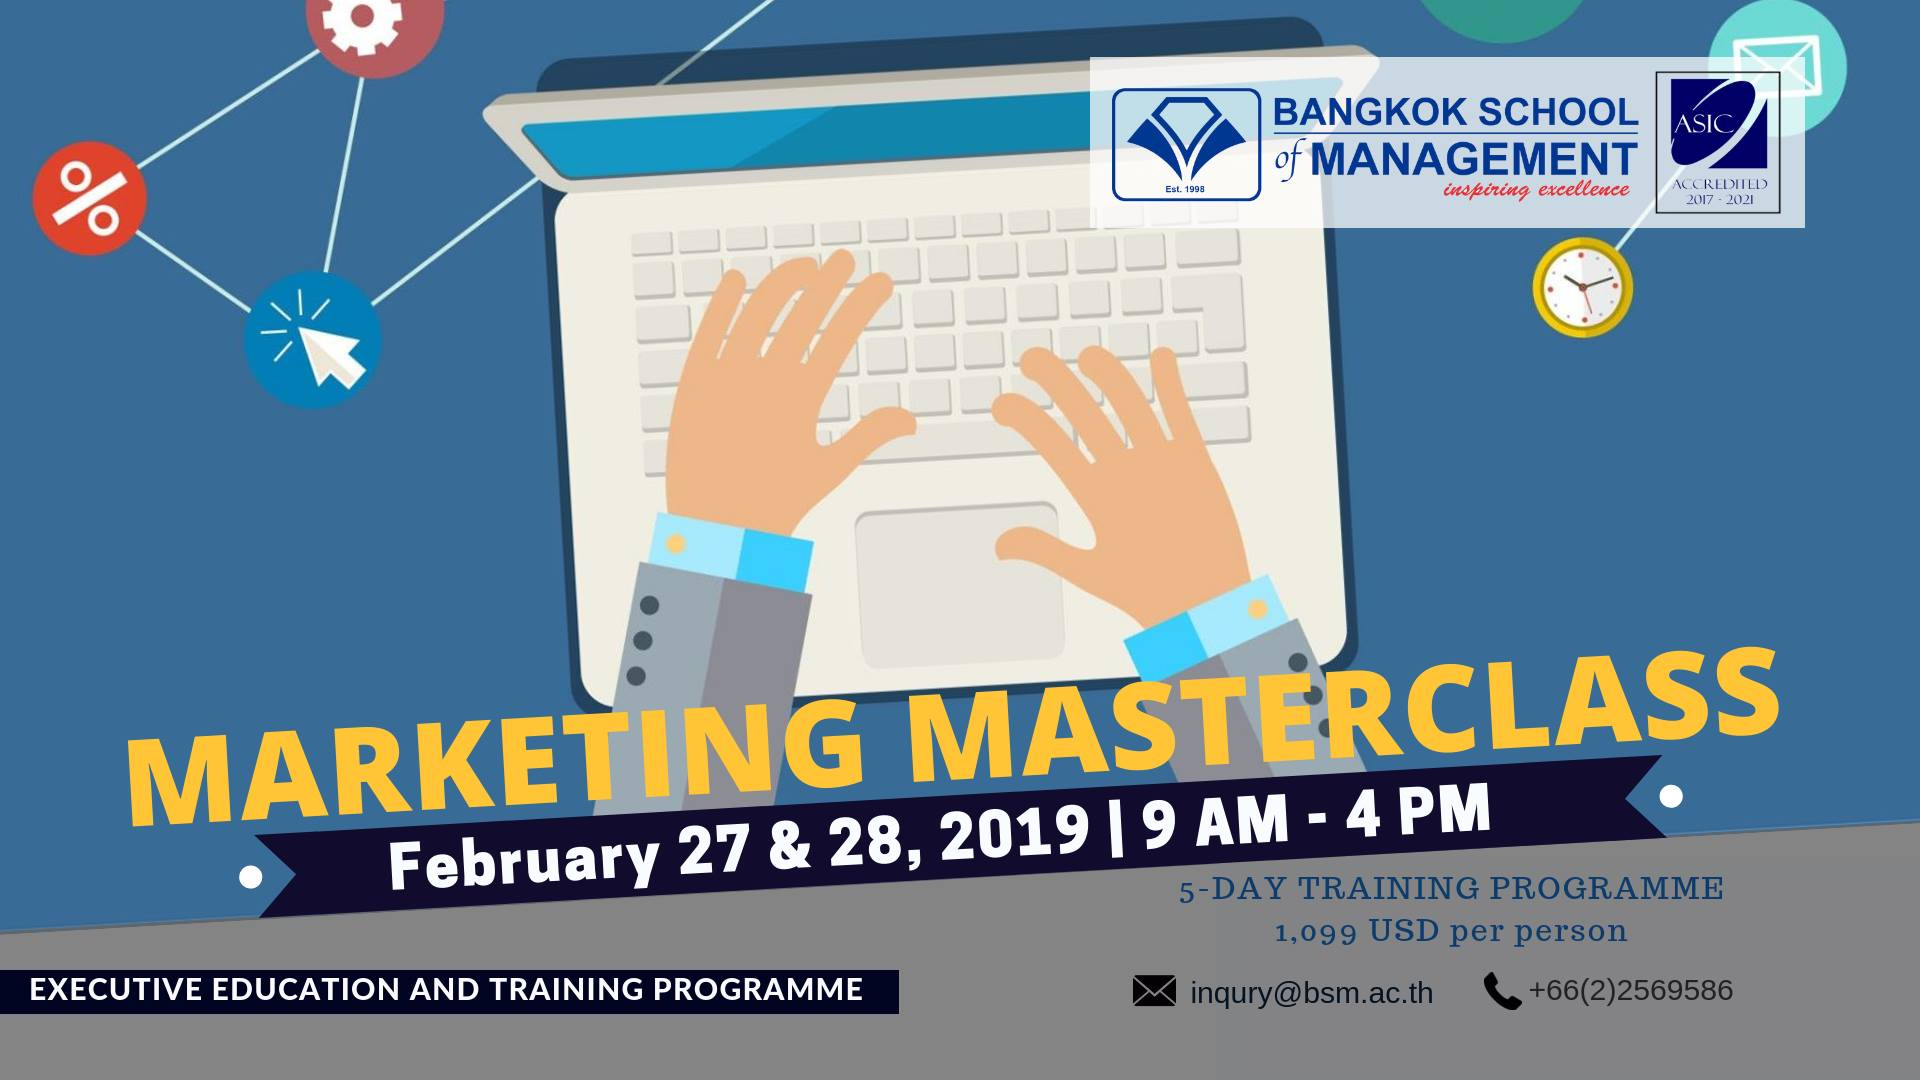 Date: February 27 & 28, 2019 Marketing Masterclass